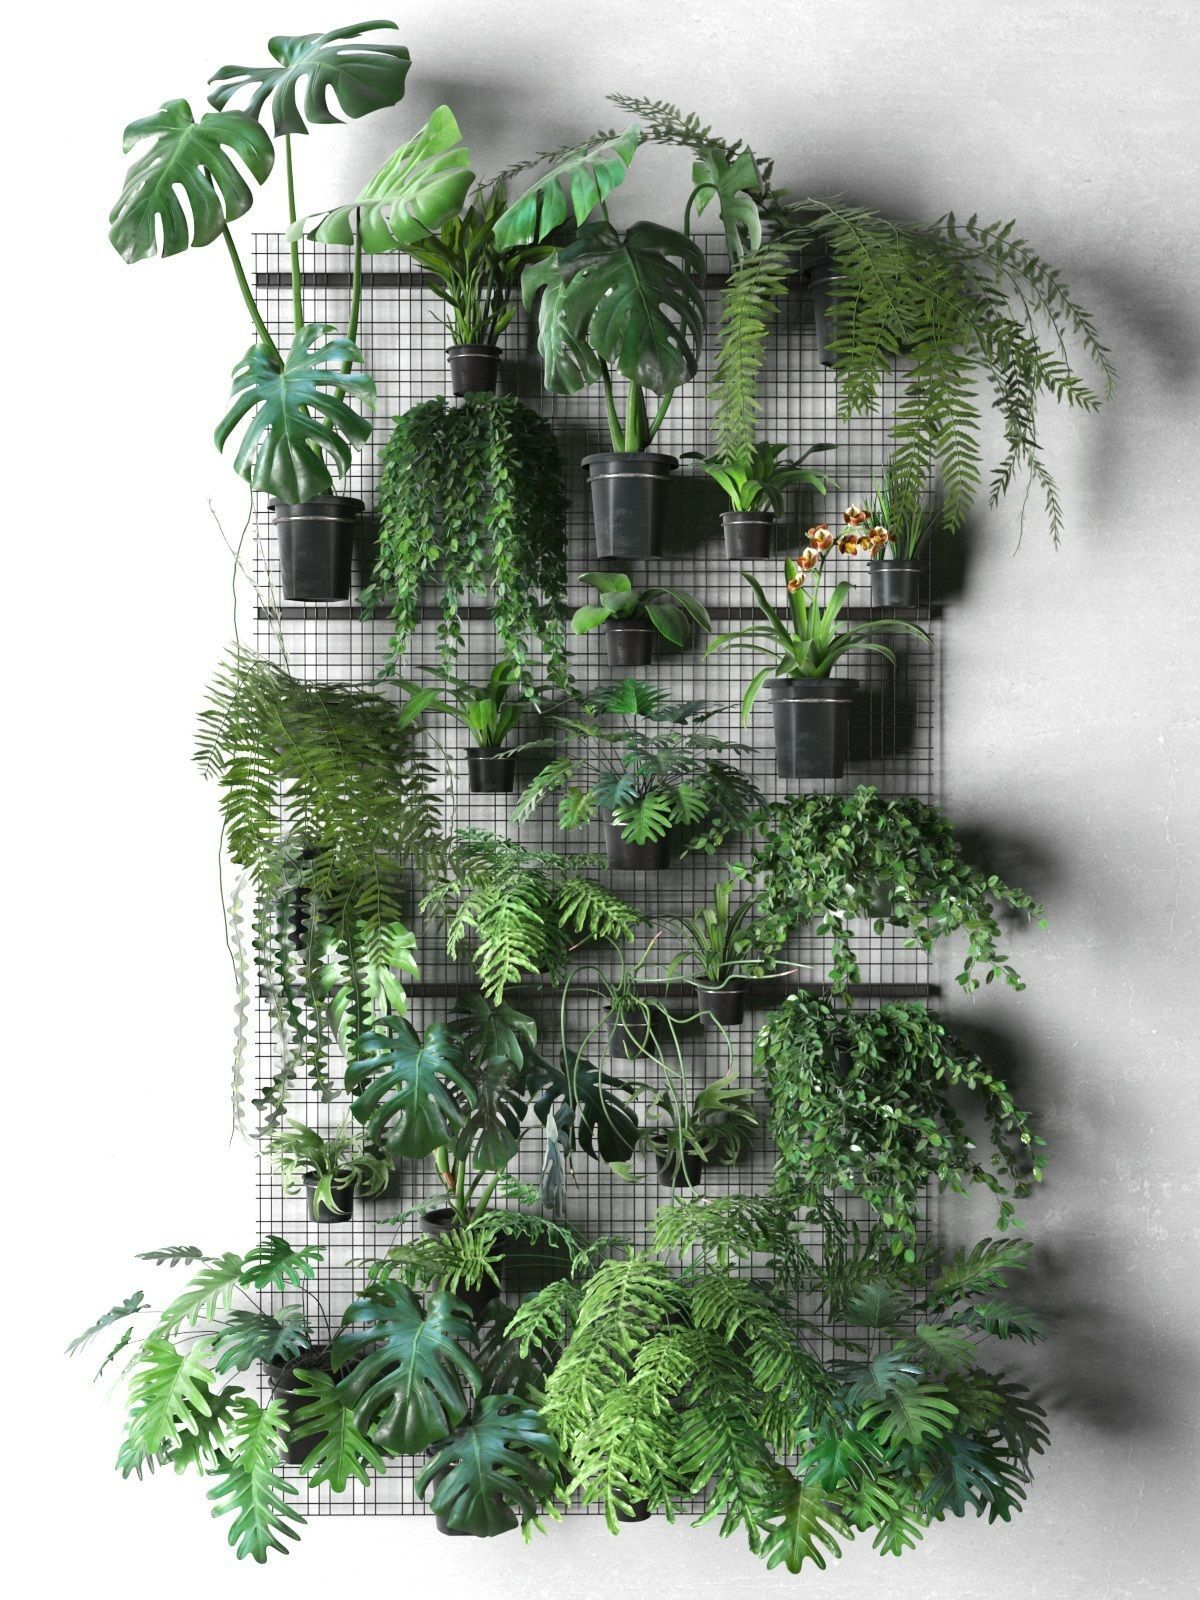 Wall Grid with Pot Plants